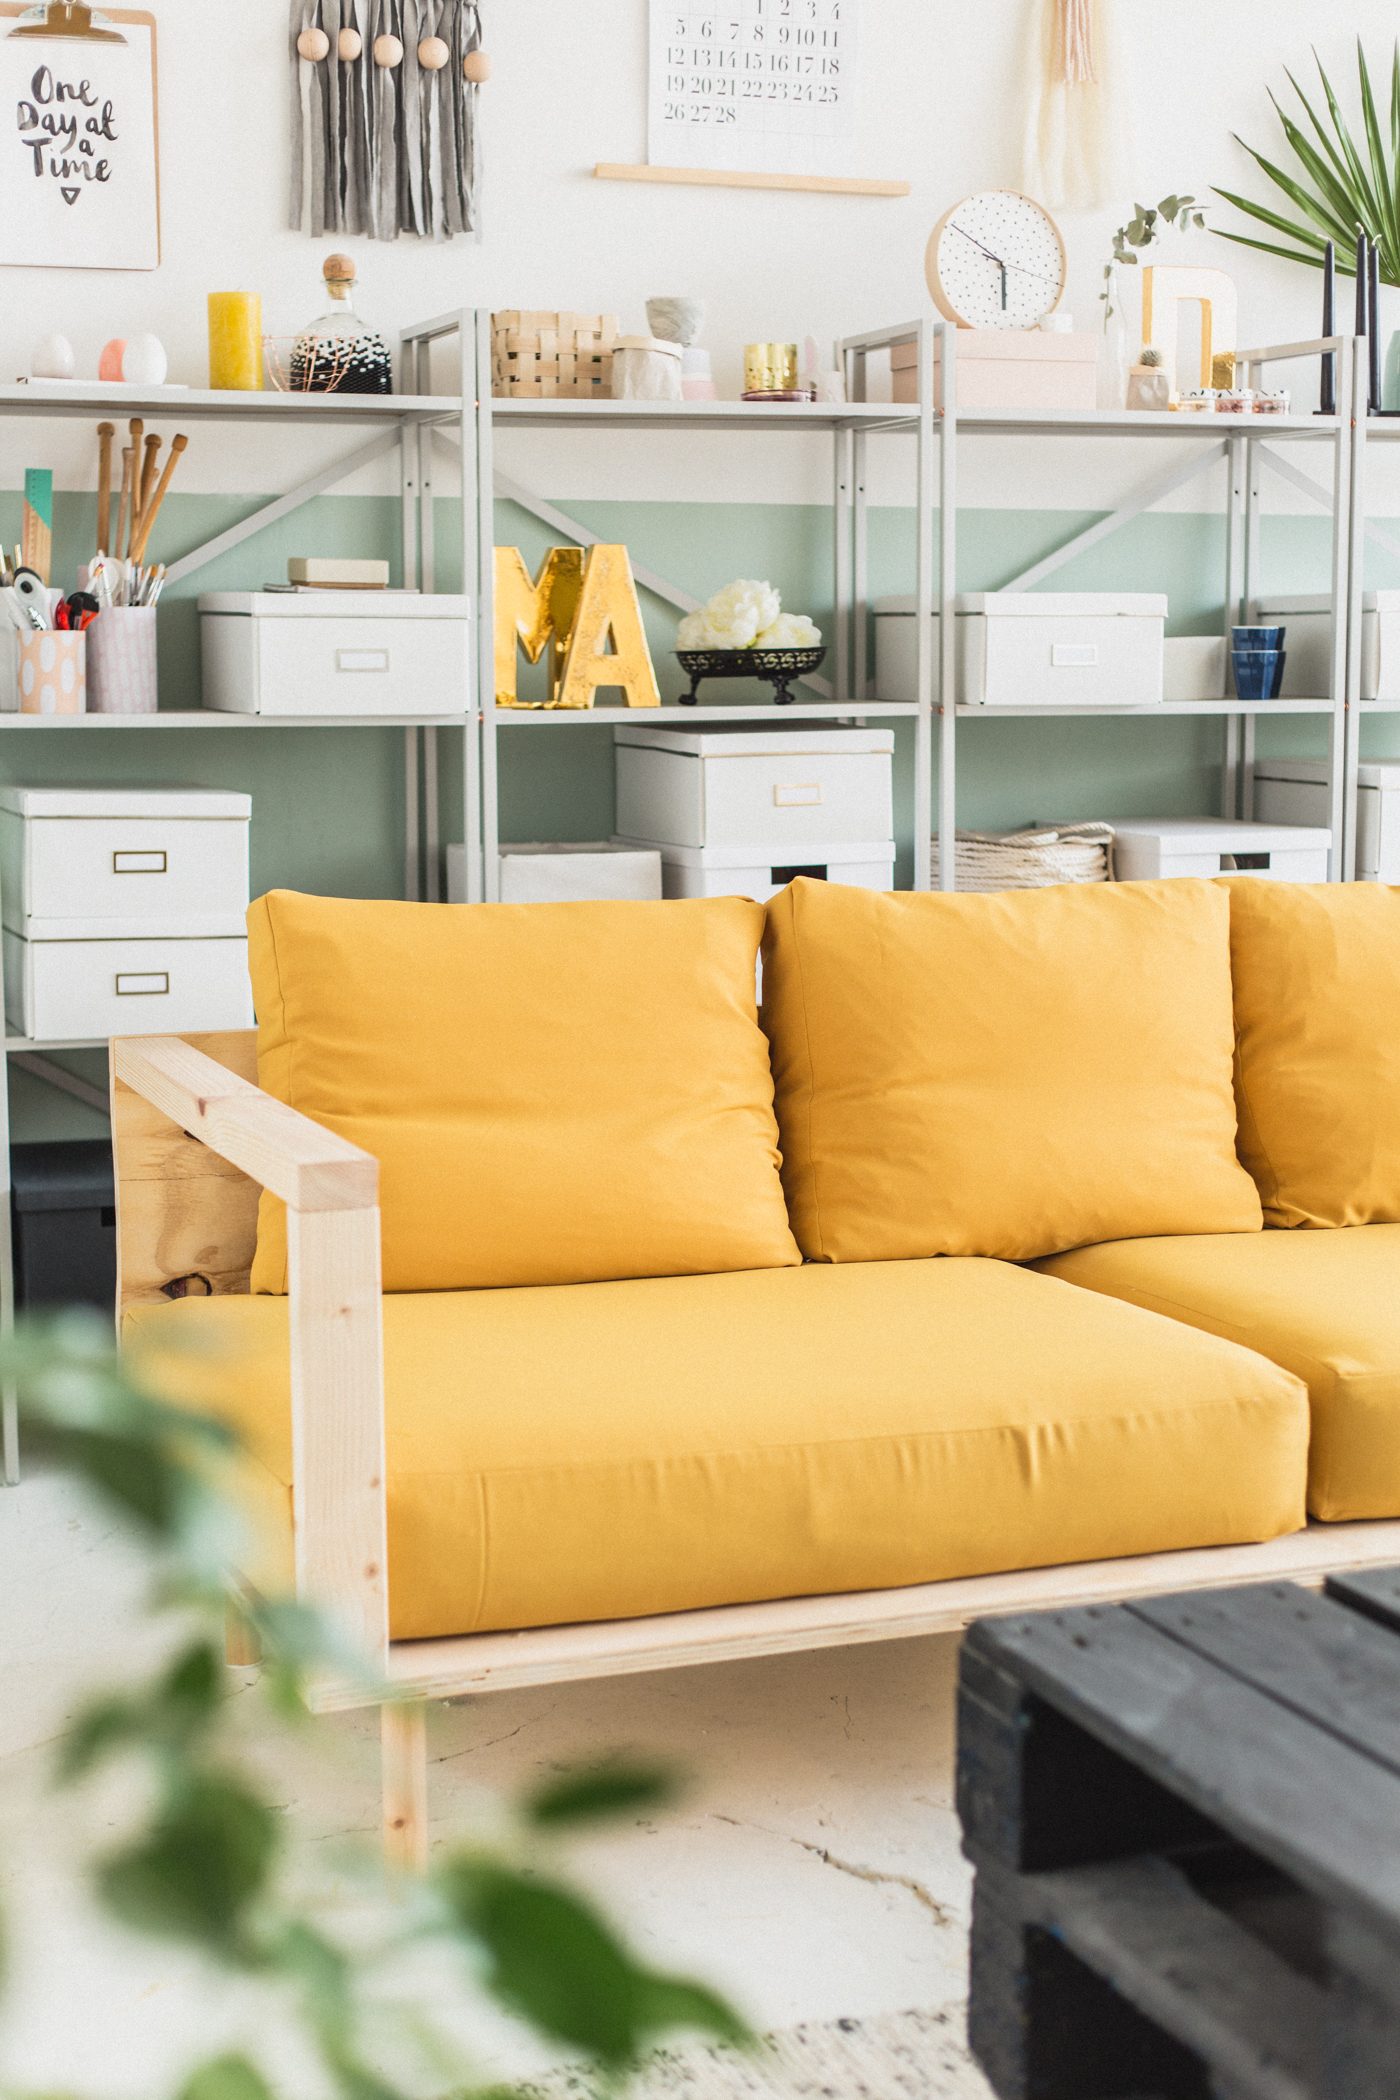 Upholstery Couch Diy Make Yourself Comfortable With This Easy Diy Wooden Studio